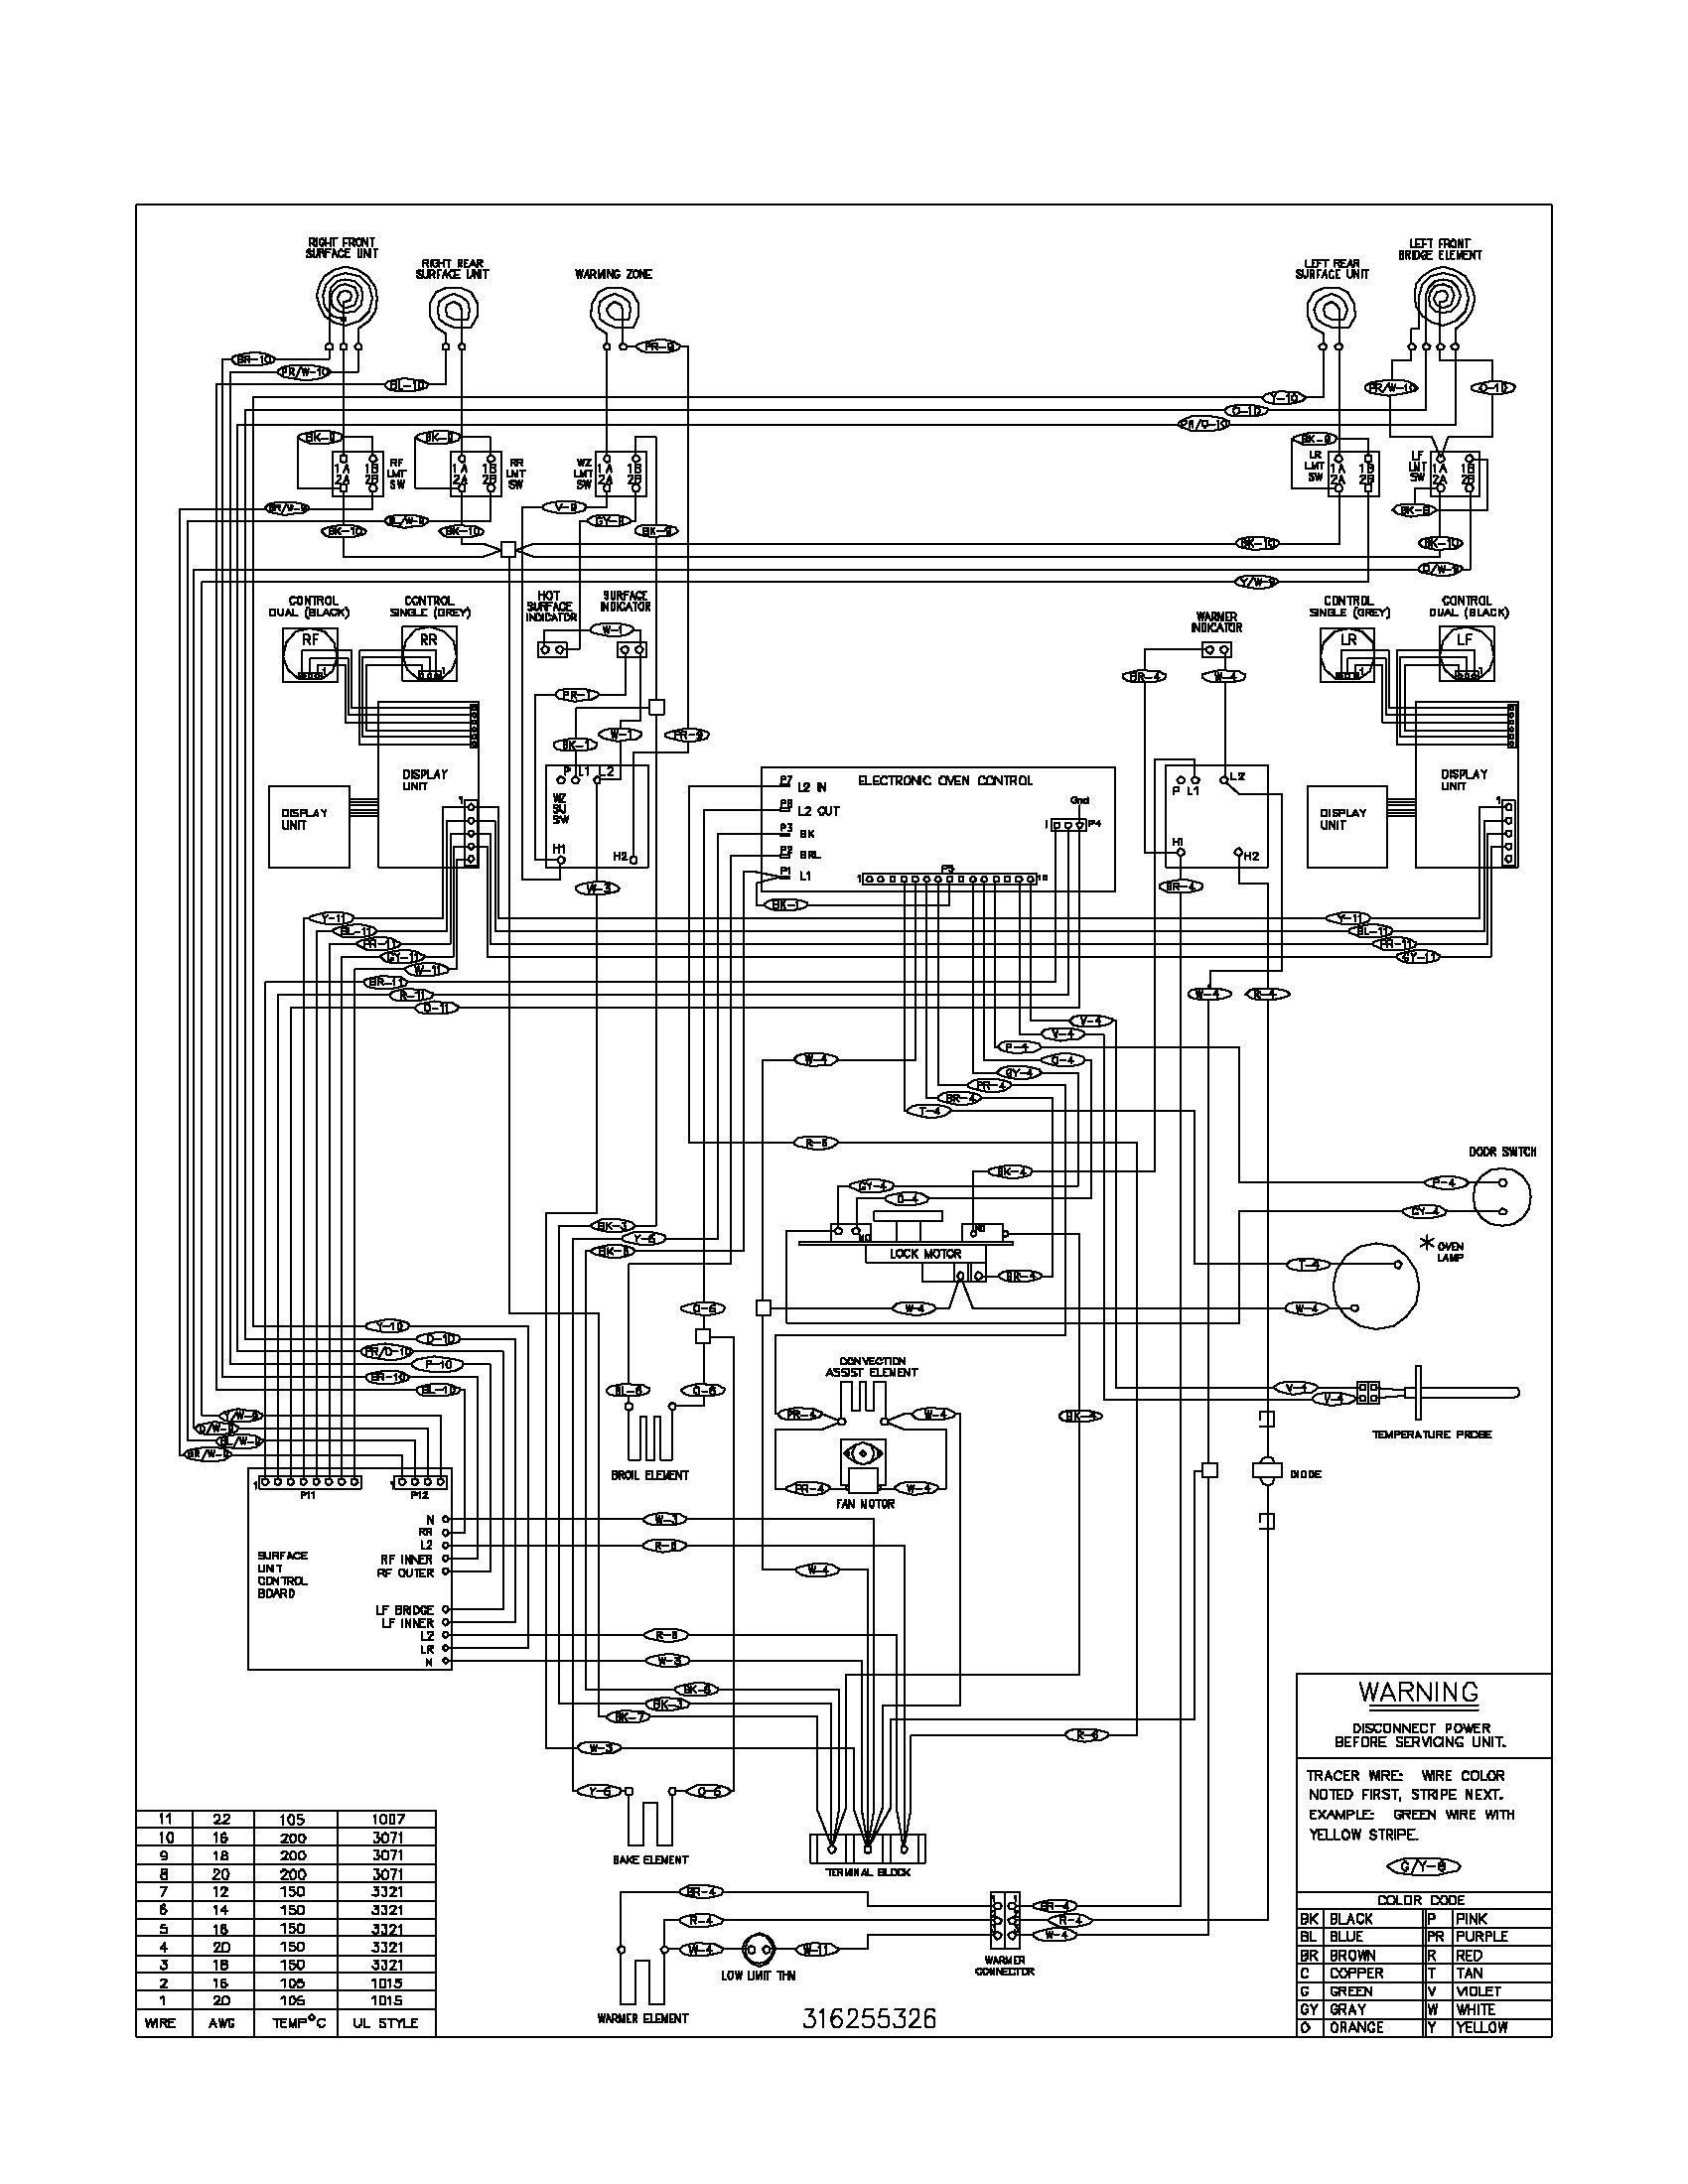 diagram diagramsample diagramformat Electric furnace